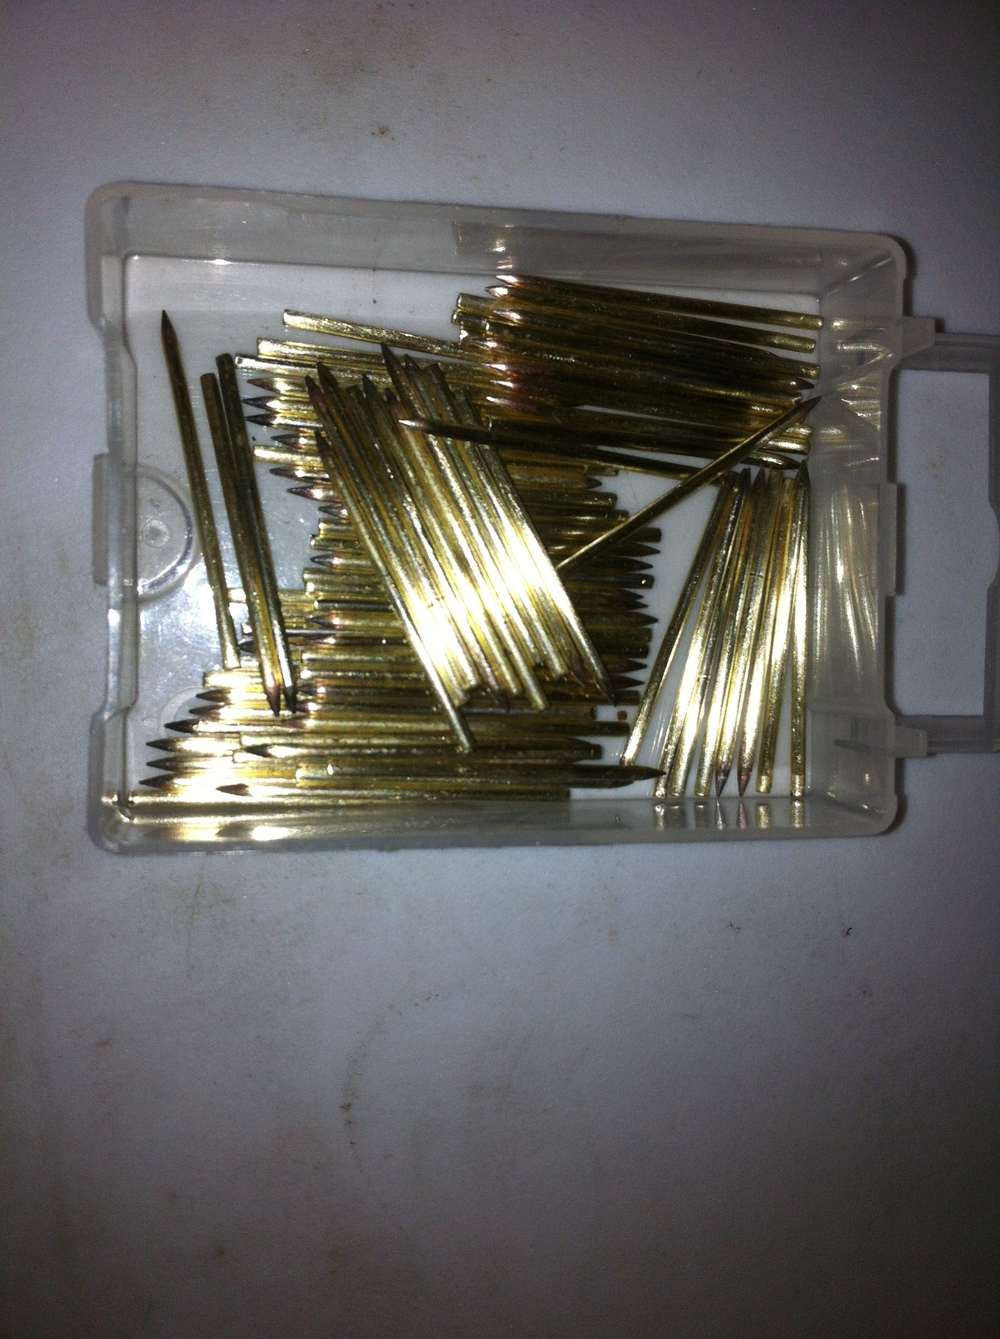 Shiny pallet valve guide pins